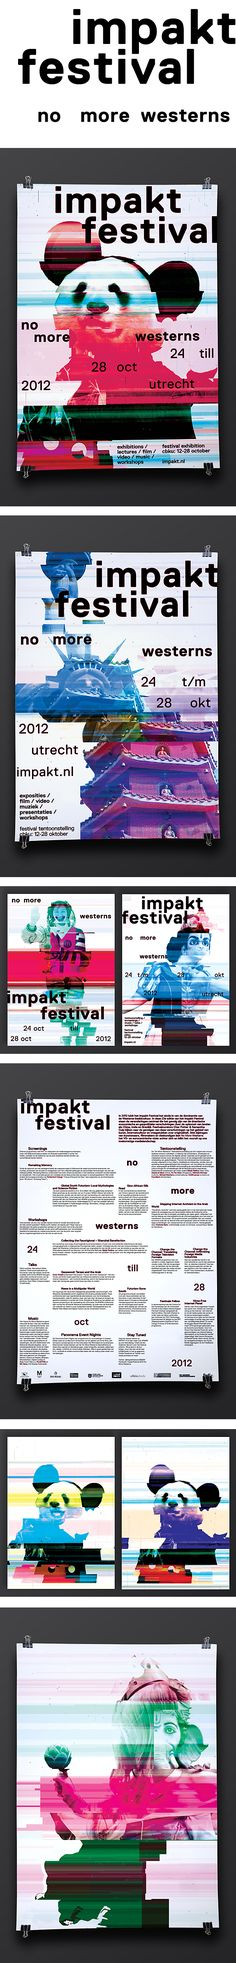 Corporate Design, ID, Logo, Poster, Print, Impakt Festival 2012, by Lava Graphic…